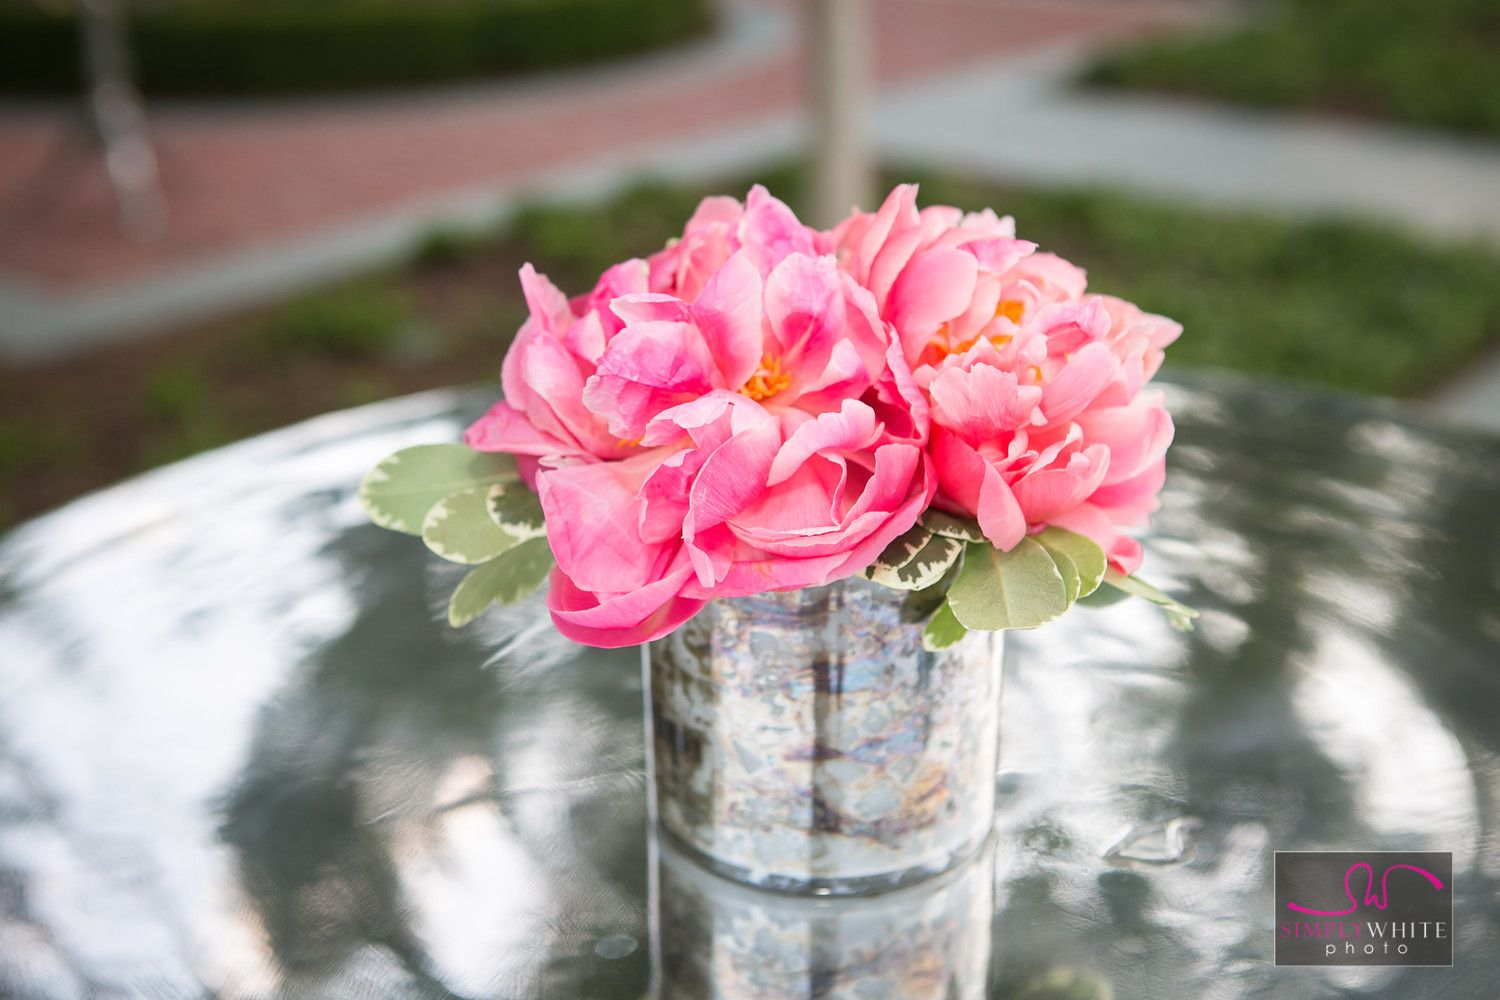 Pretty pink flowers for engagement party. Spring time engagement and photos.